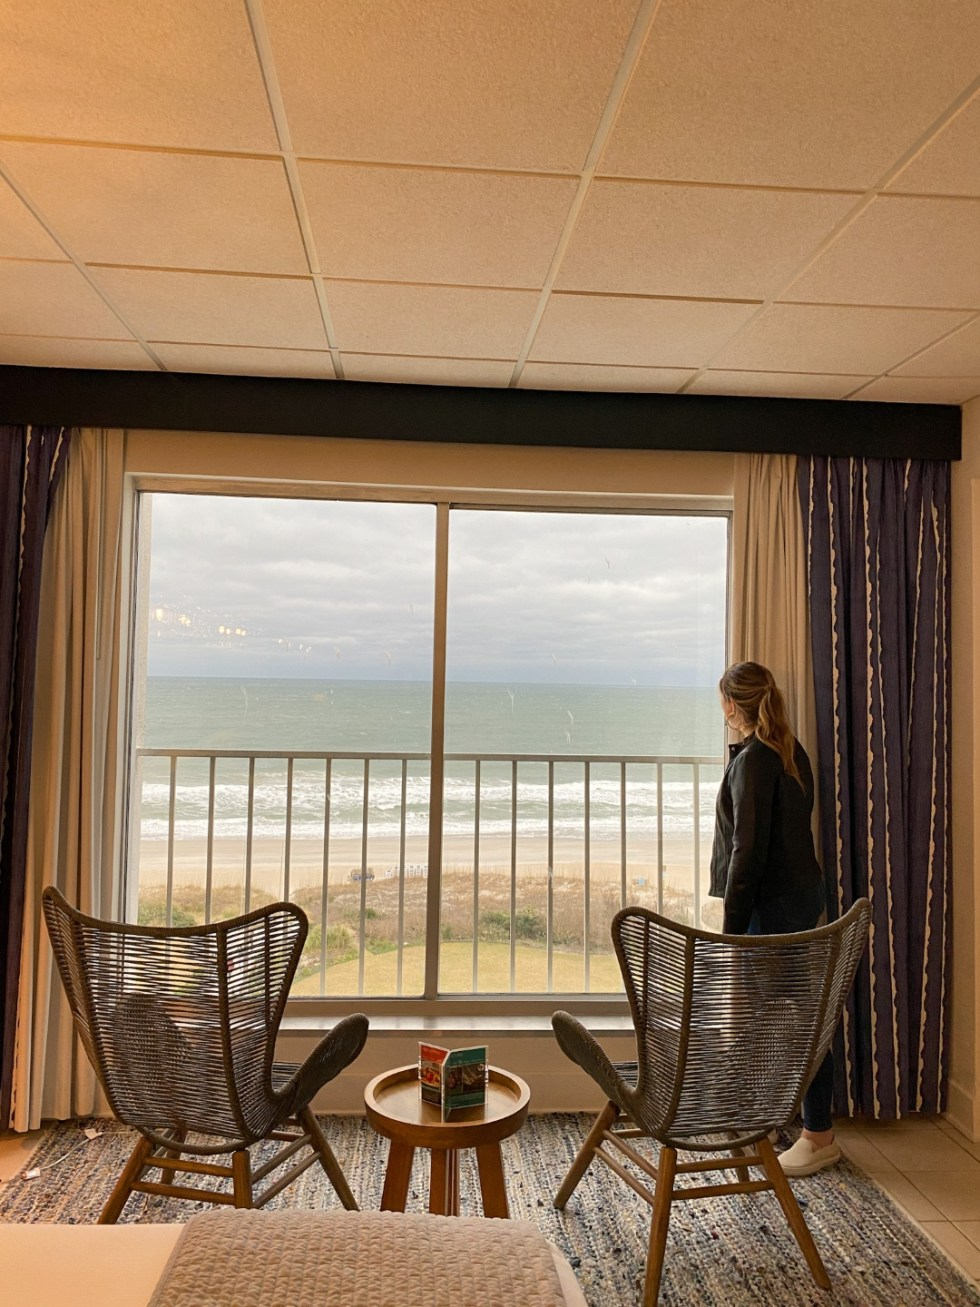 A Spring Weekend in Wilmington, NC: the Best Things to Do - I'm Fixin' To - @imfixintoblog |Weekend in Wilmington by popular NC travel blog, I'm Fixin' To: image of a woman standing in a hotel room and looking at the beach out a large picture window.